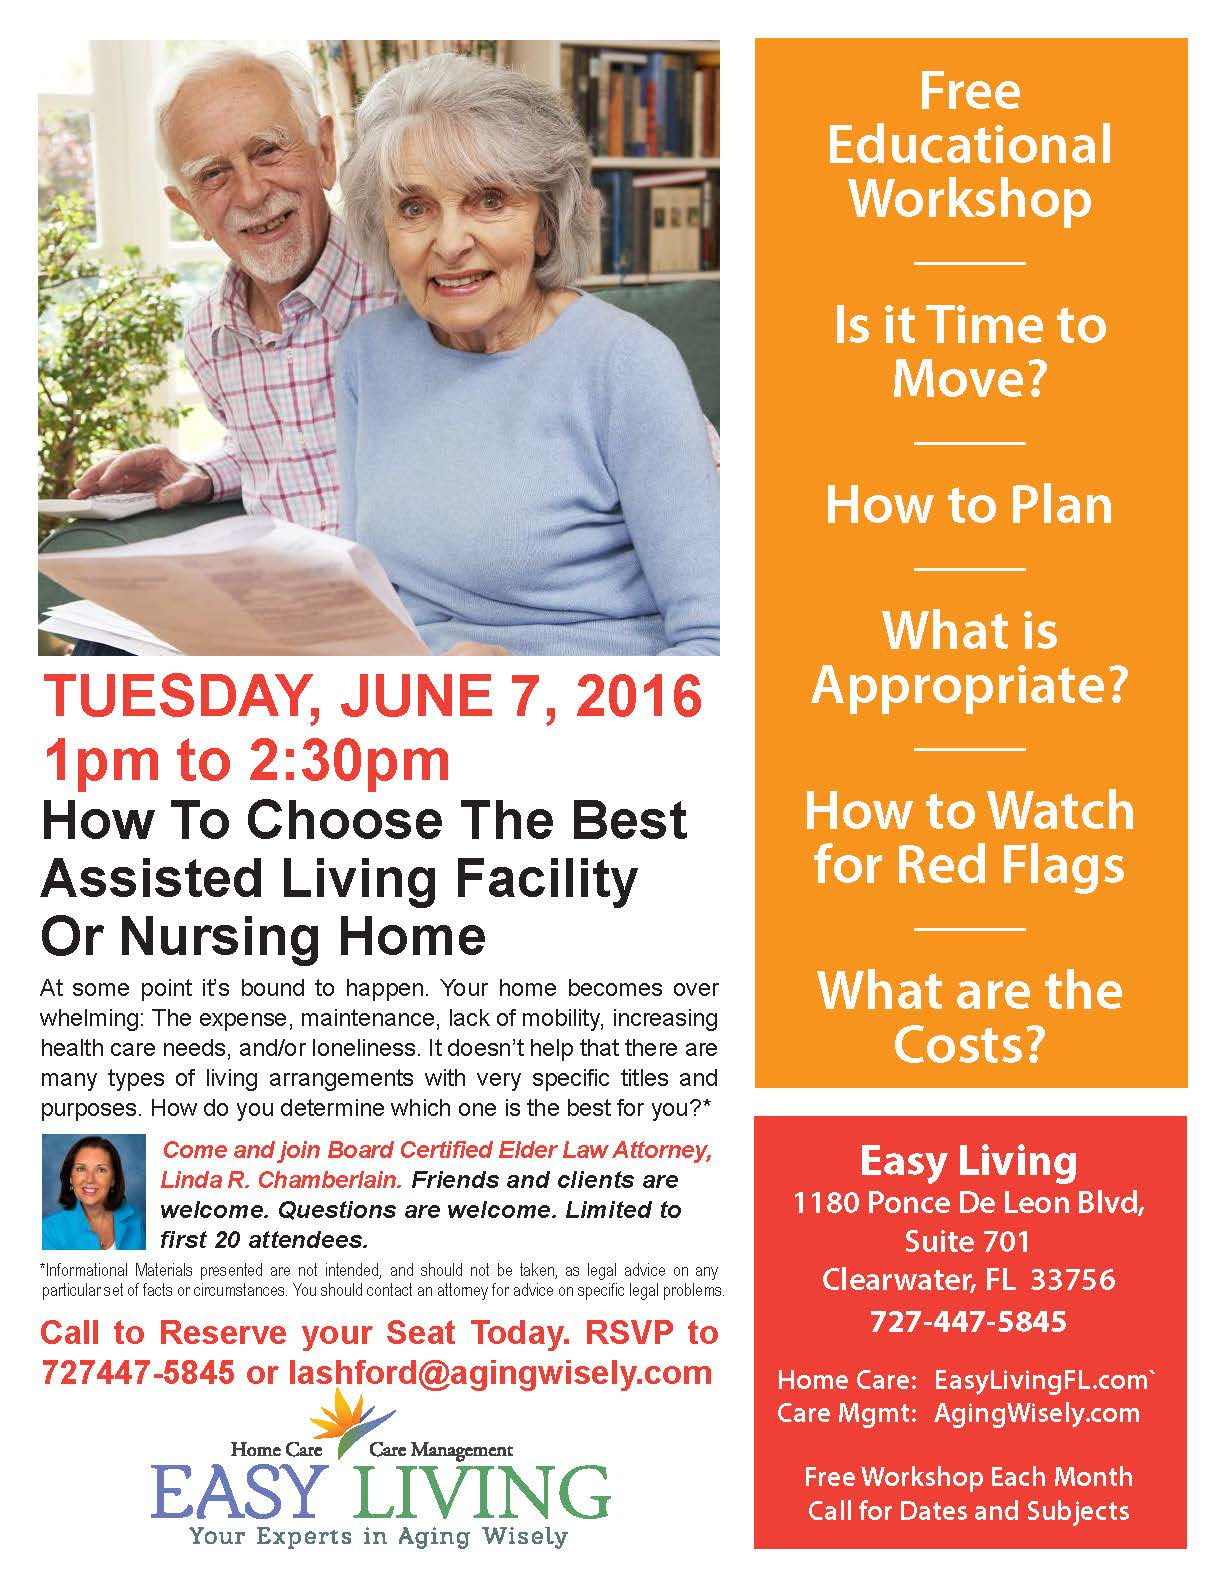 How To Choose The Best Assisted Living Facility Or Nursing Home